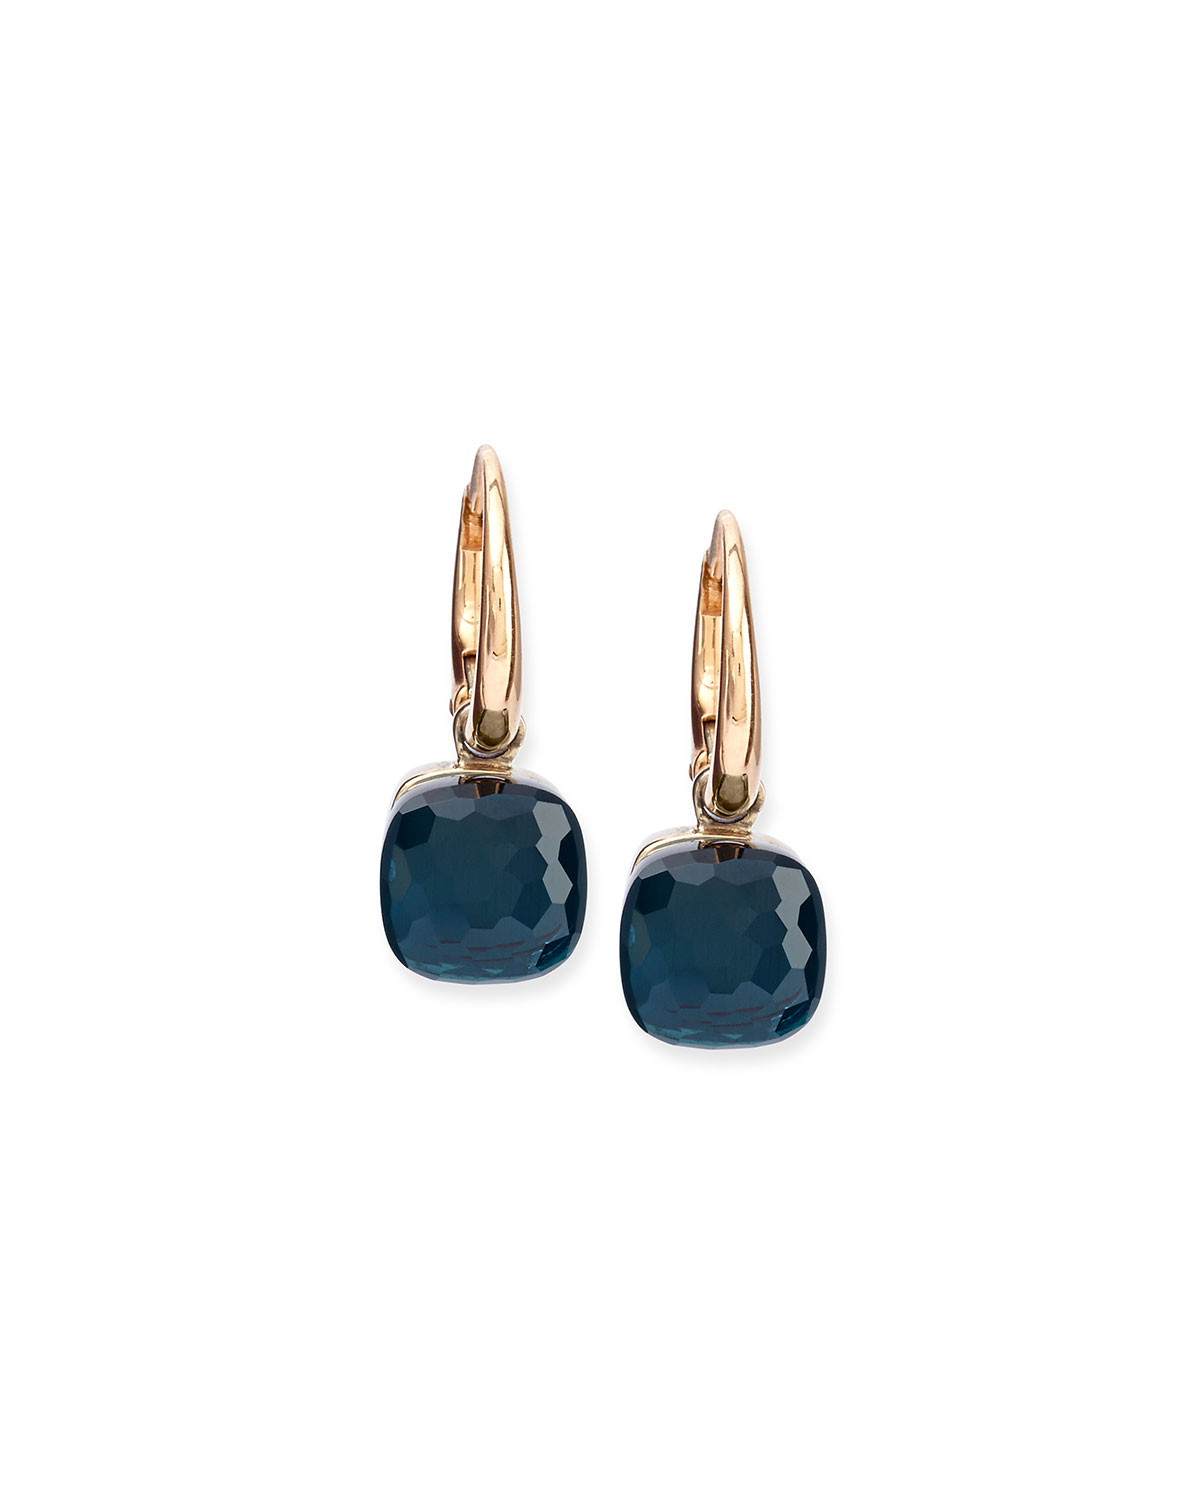 Pomellato Nudo London Blue Topaz Small Drop Earrings In